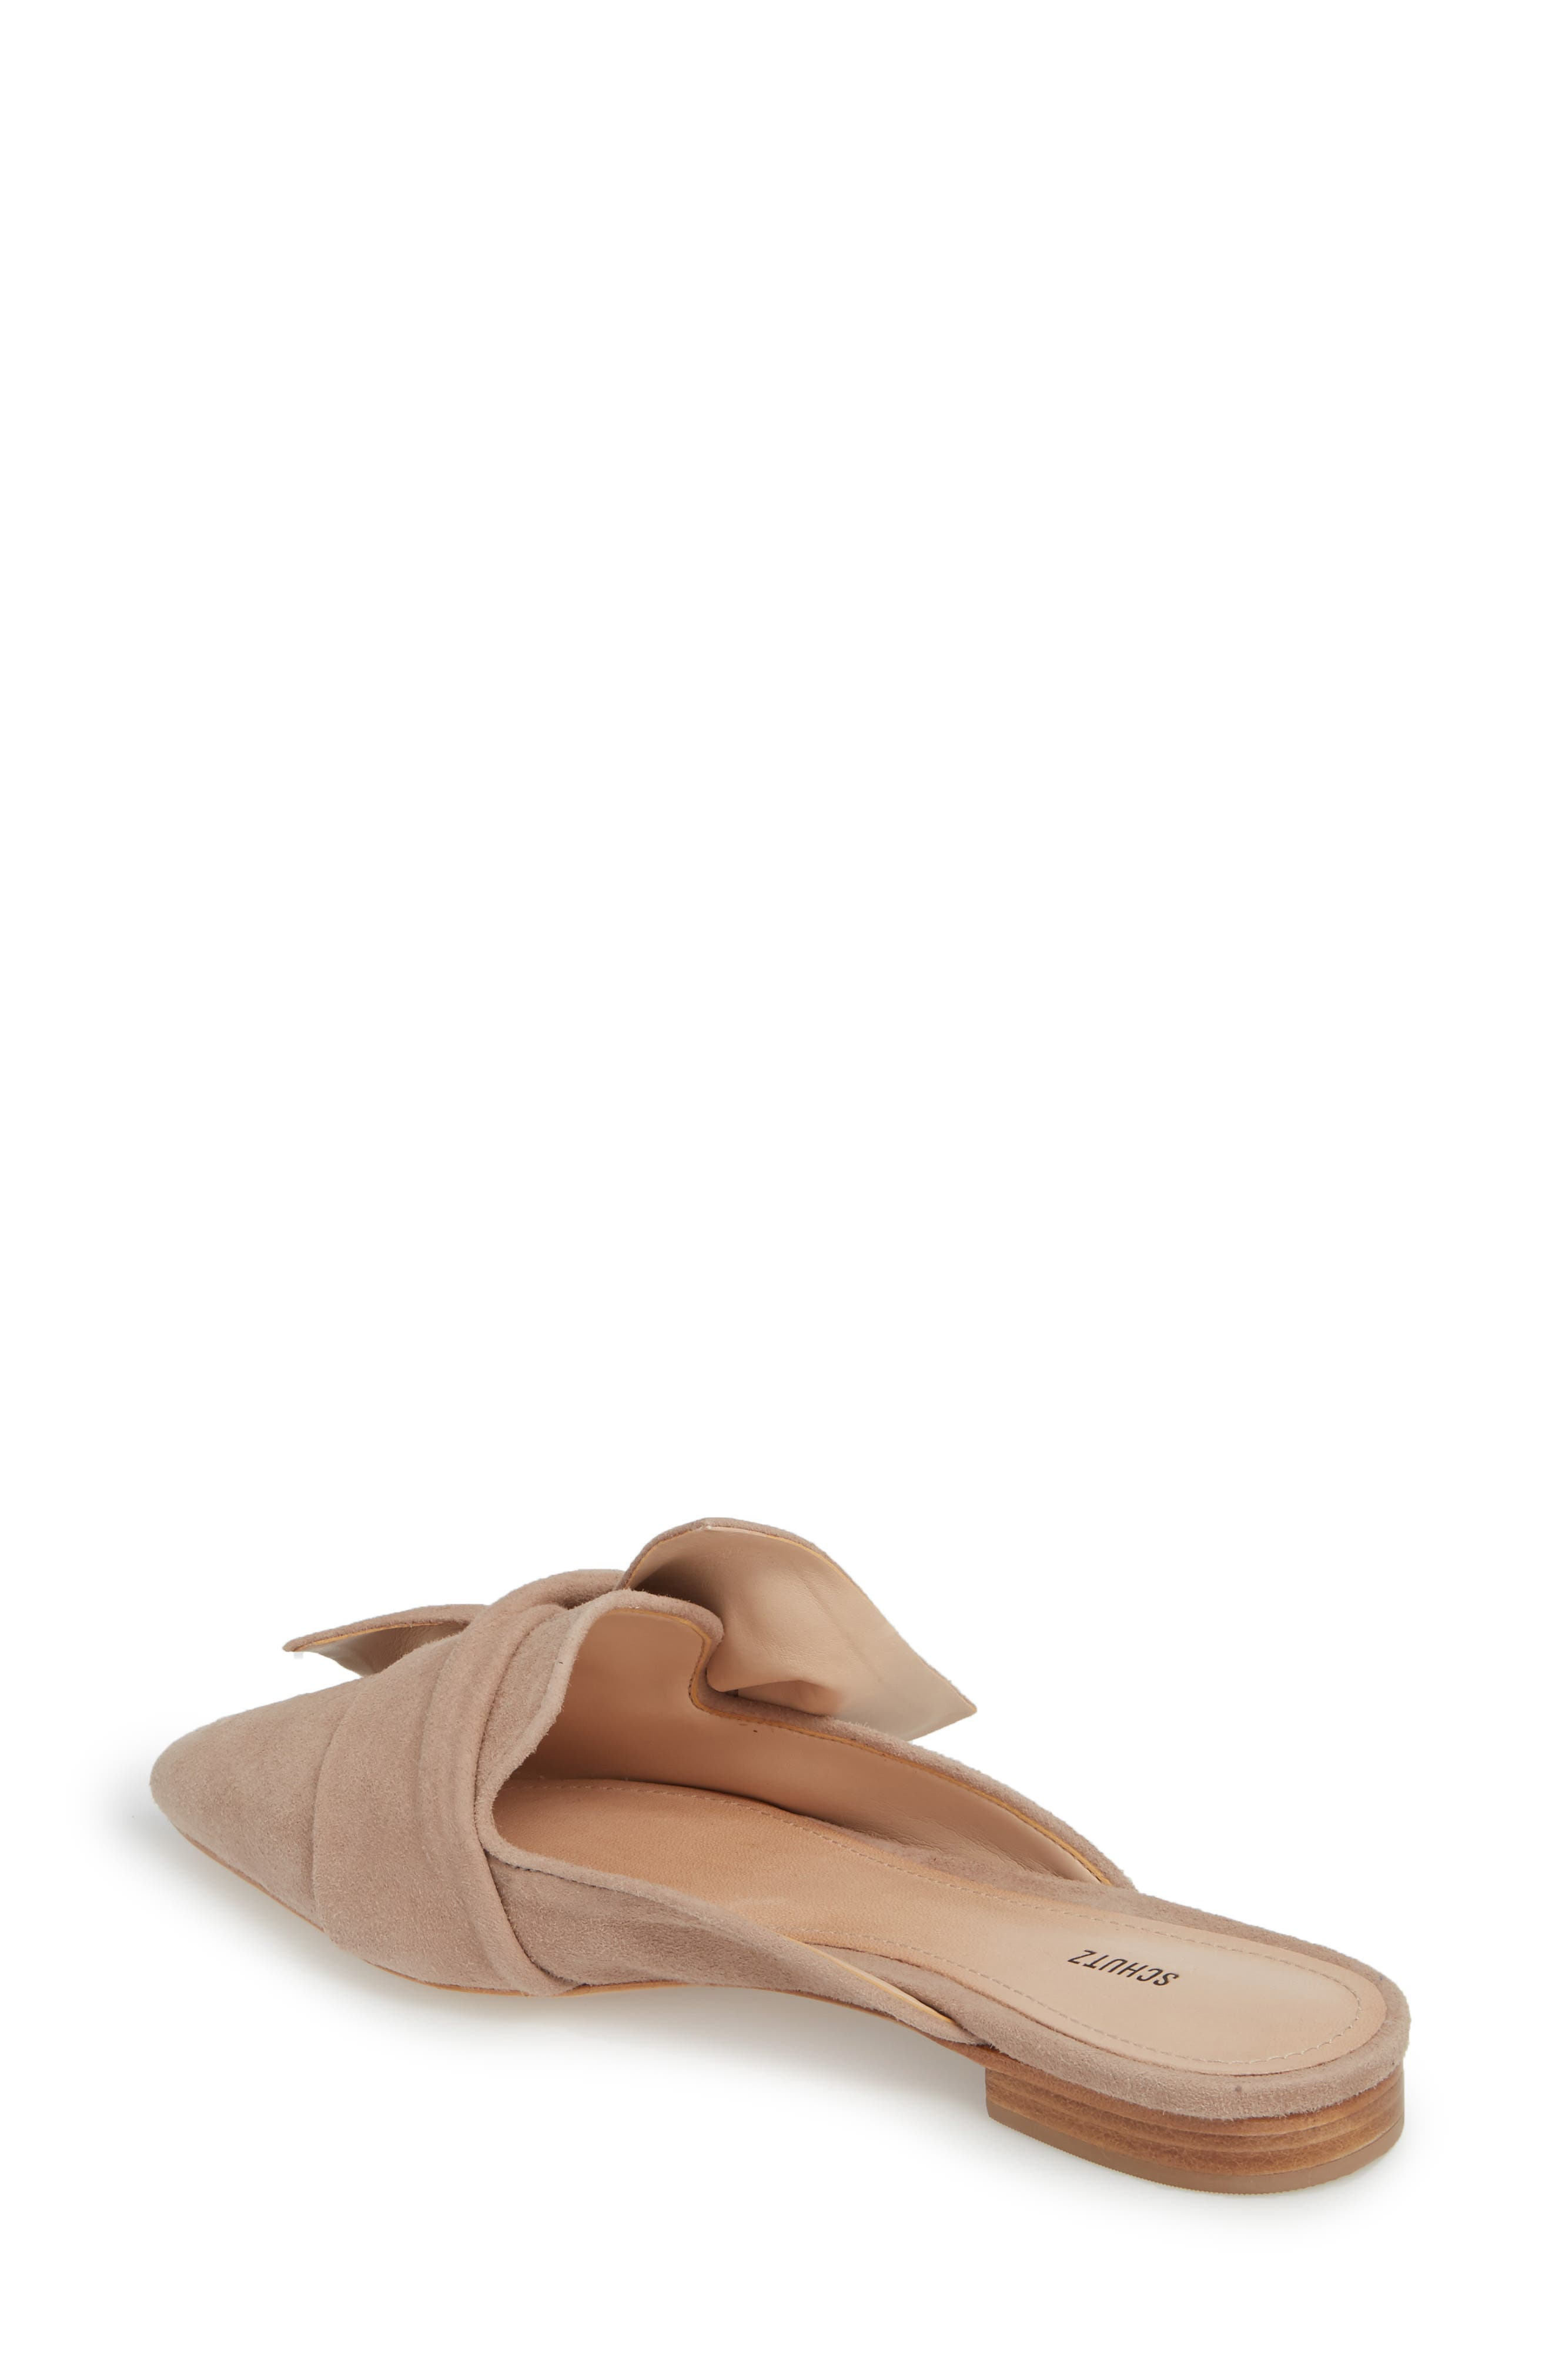 D'Ana Knotted Loafer Mule,                             Alternate thumbnail 2, color,                             NEUTRAL SUEDE